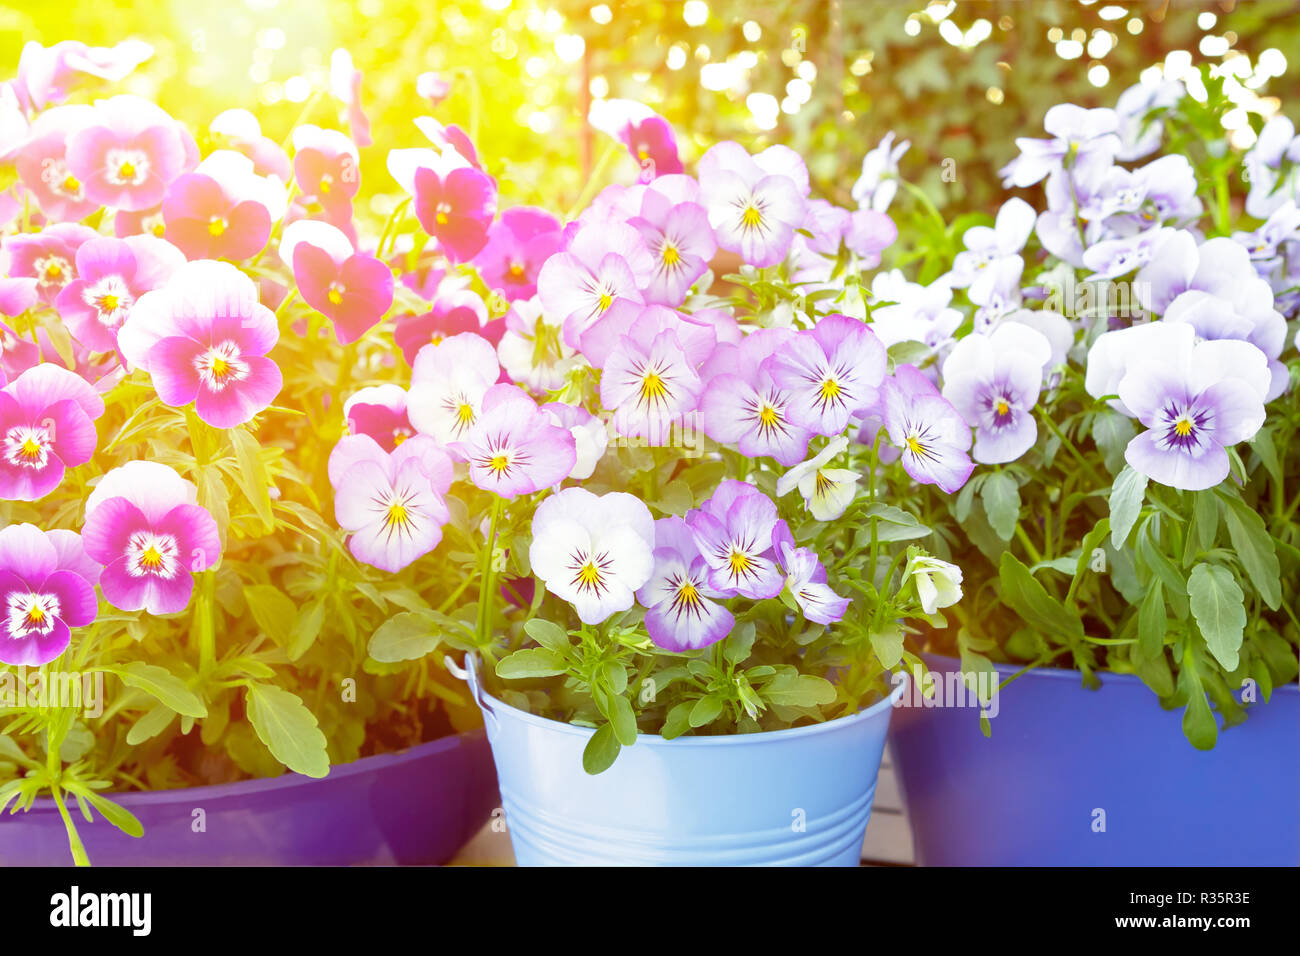 Purple, violet and blue pansy flowers in 3 different pots on a balcony table in bright spring sunlight, background template Stock Photo